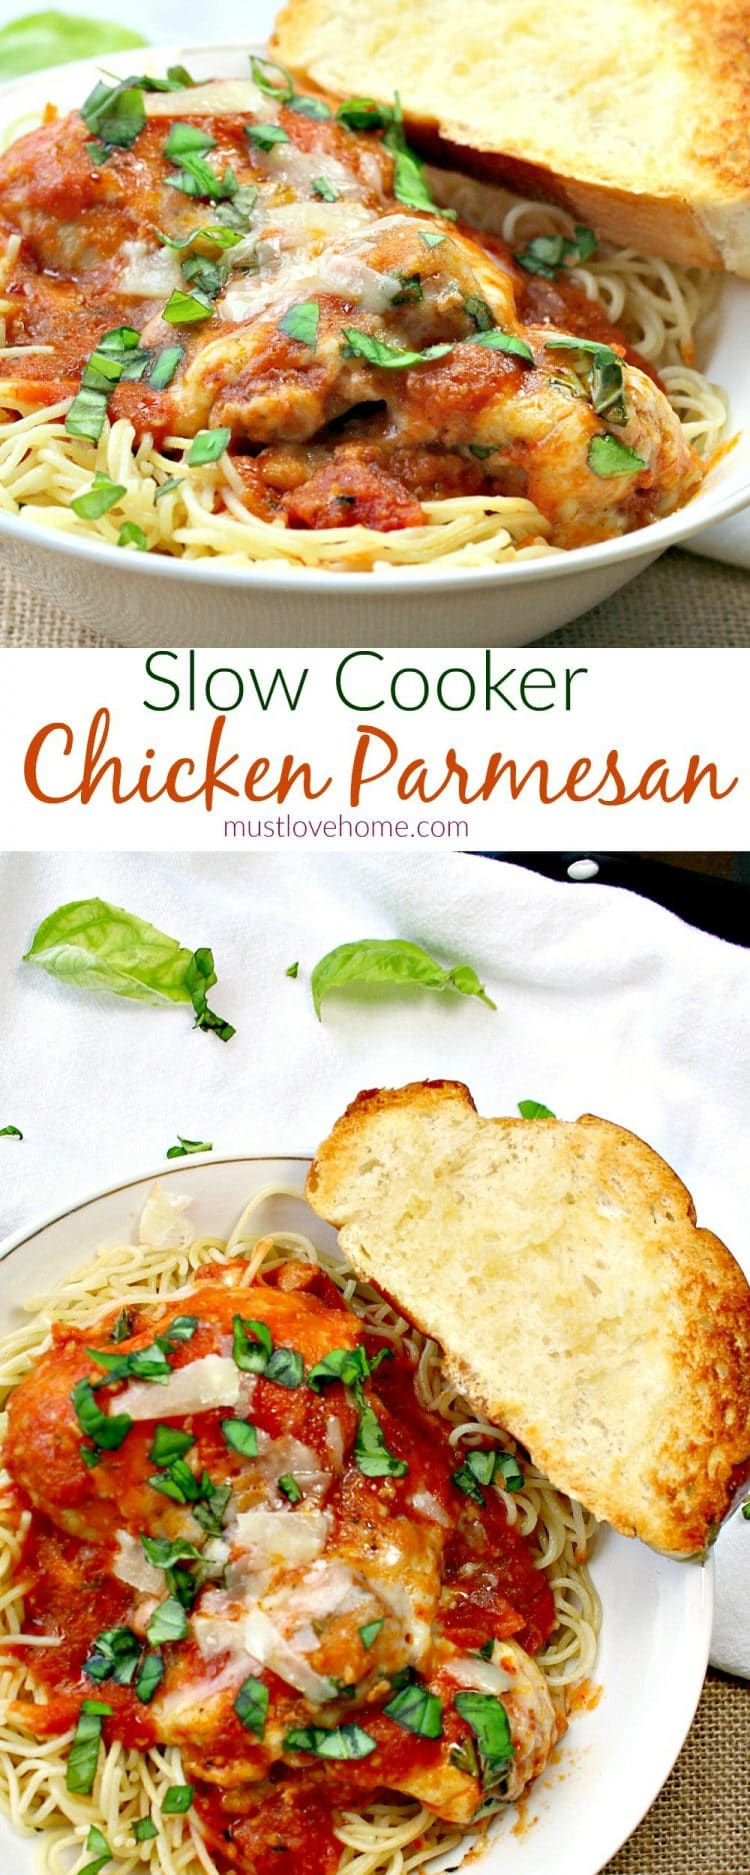 Slow Cooker Chicken Parmesan is an Italian Classic - tender chicken thighs coated with a tangy tomato sauce and then covered in a layer of bubbling Mozzarella cheese - so easy to make in the slow cooker!